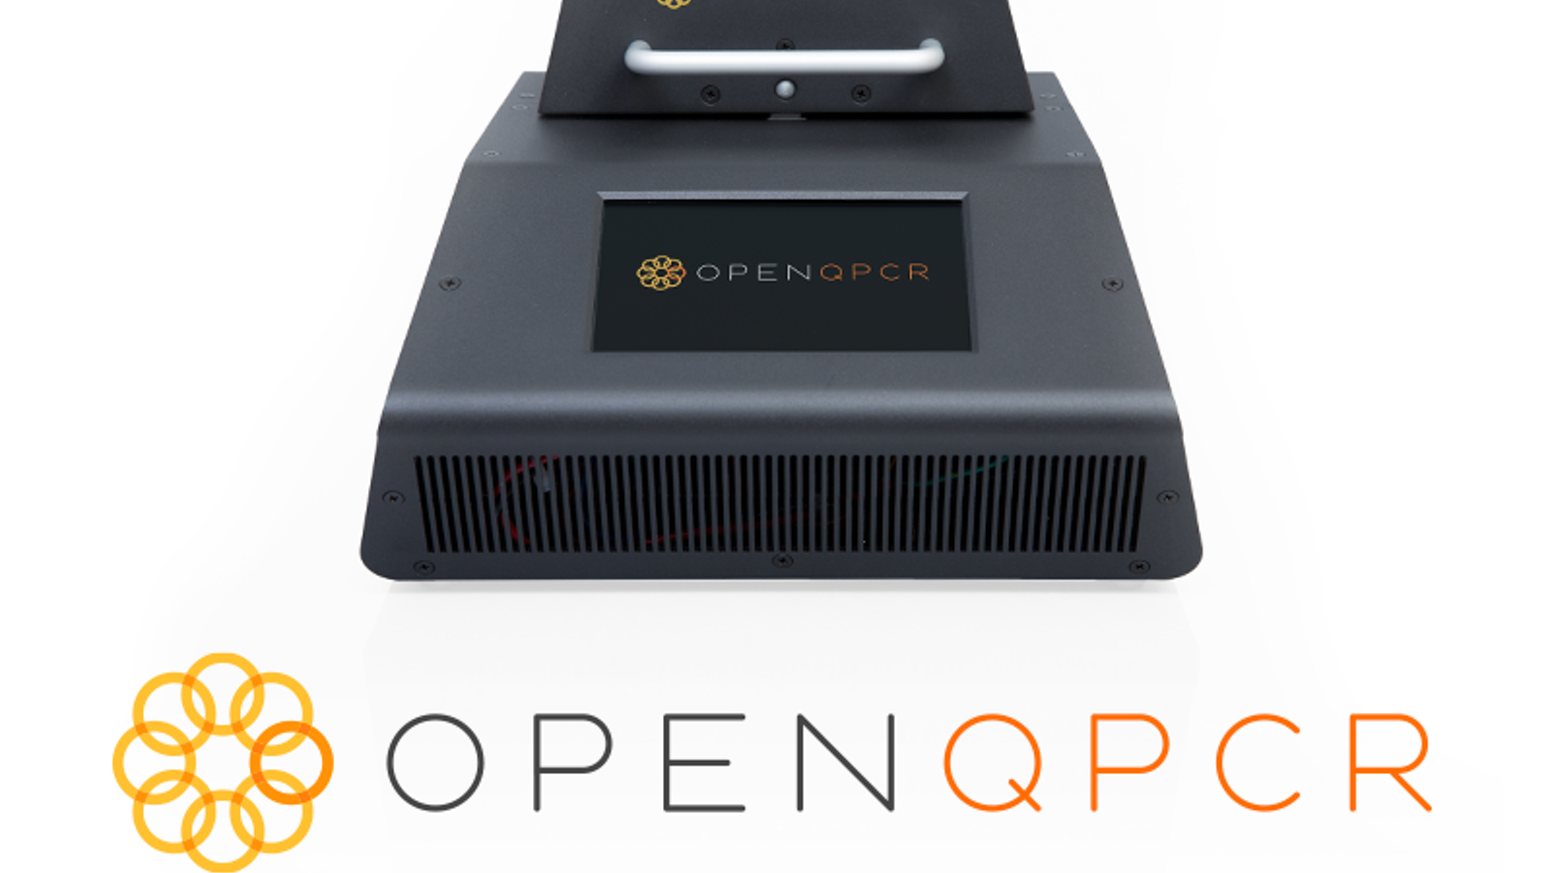 Turning DNA into data just became affordable, and biohacking will never be the same. Meet our open source Real-Time PCR Thermocycler.